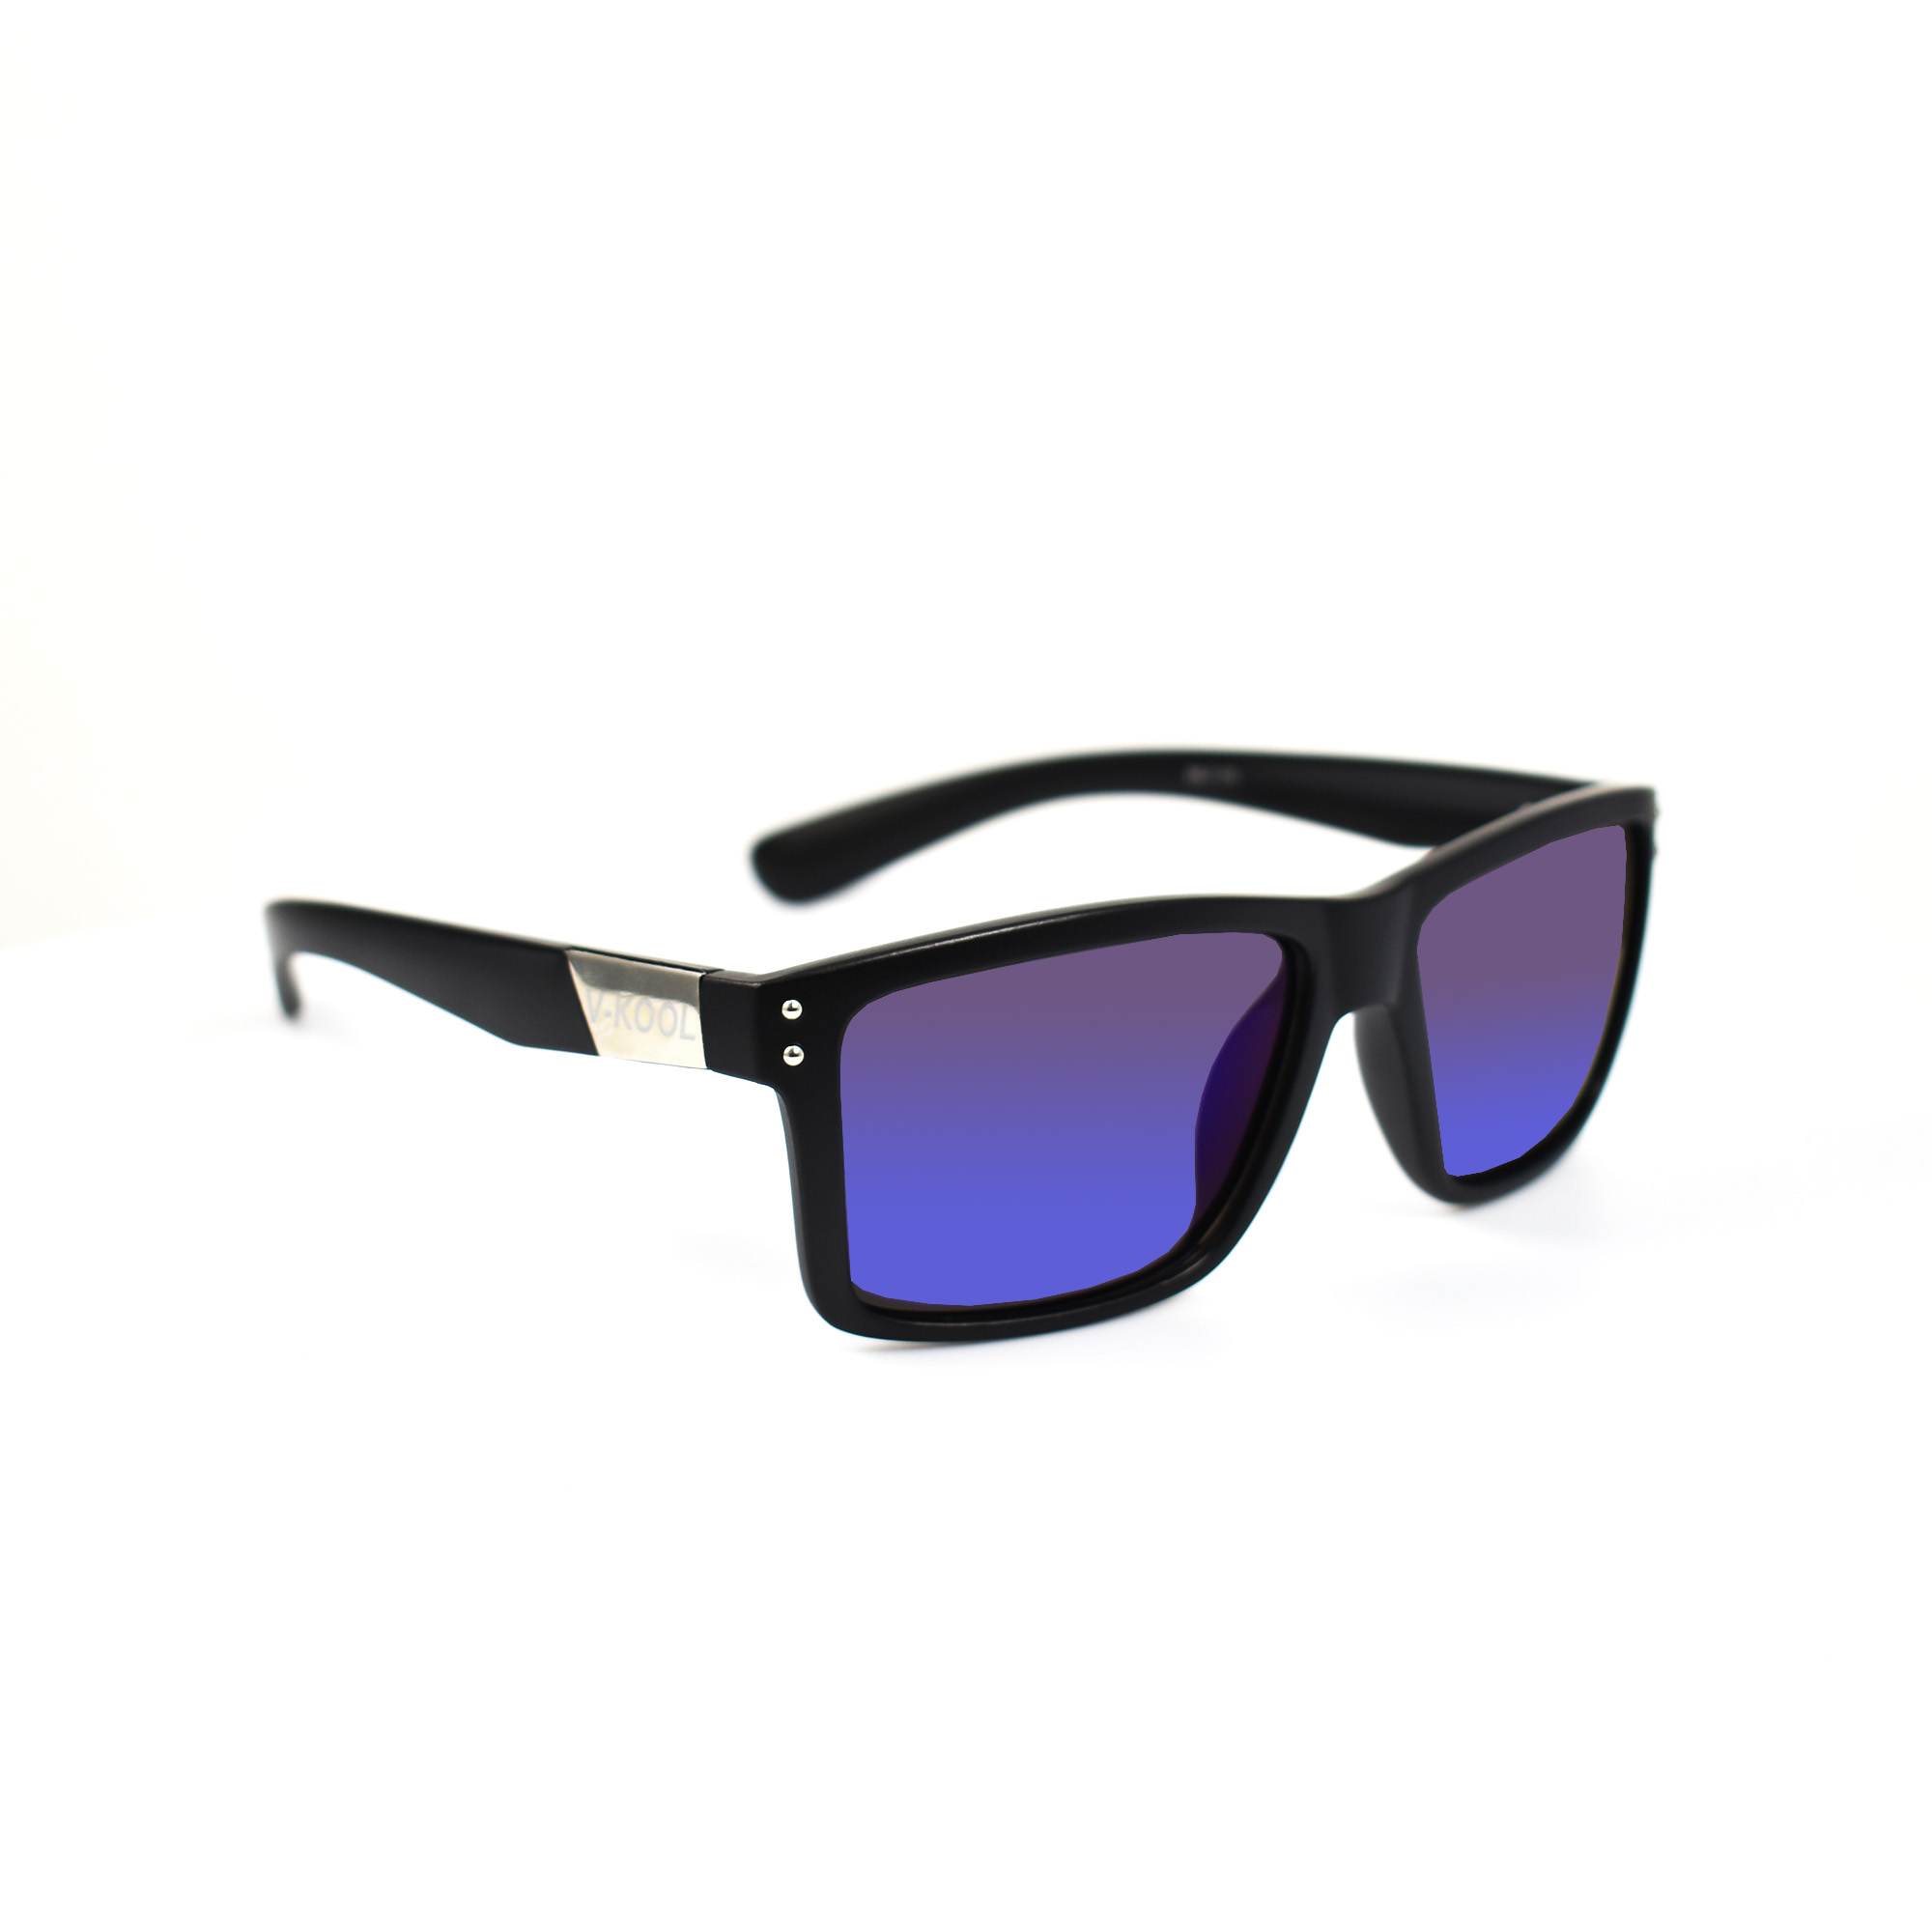 Vasyl Black Wayfarer Polarized Sunglasses